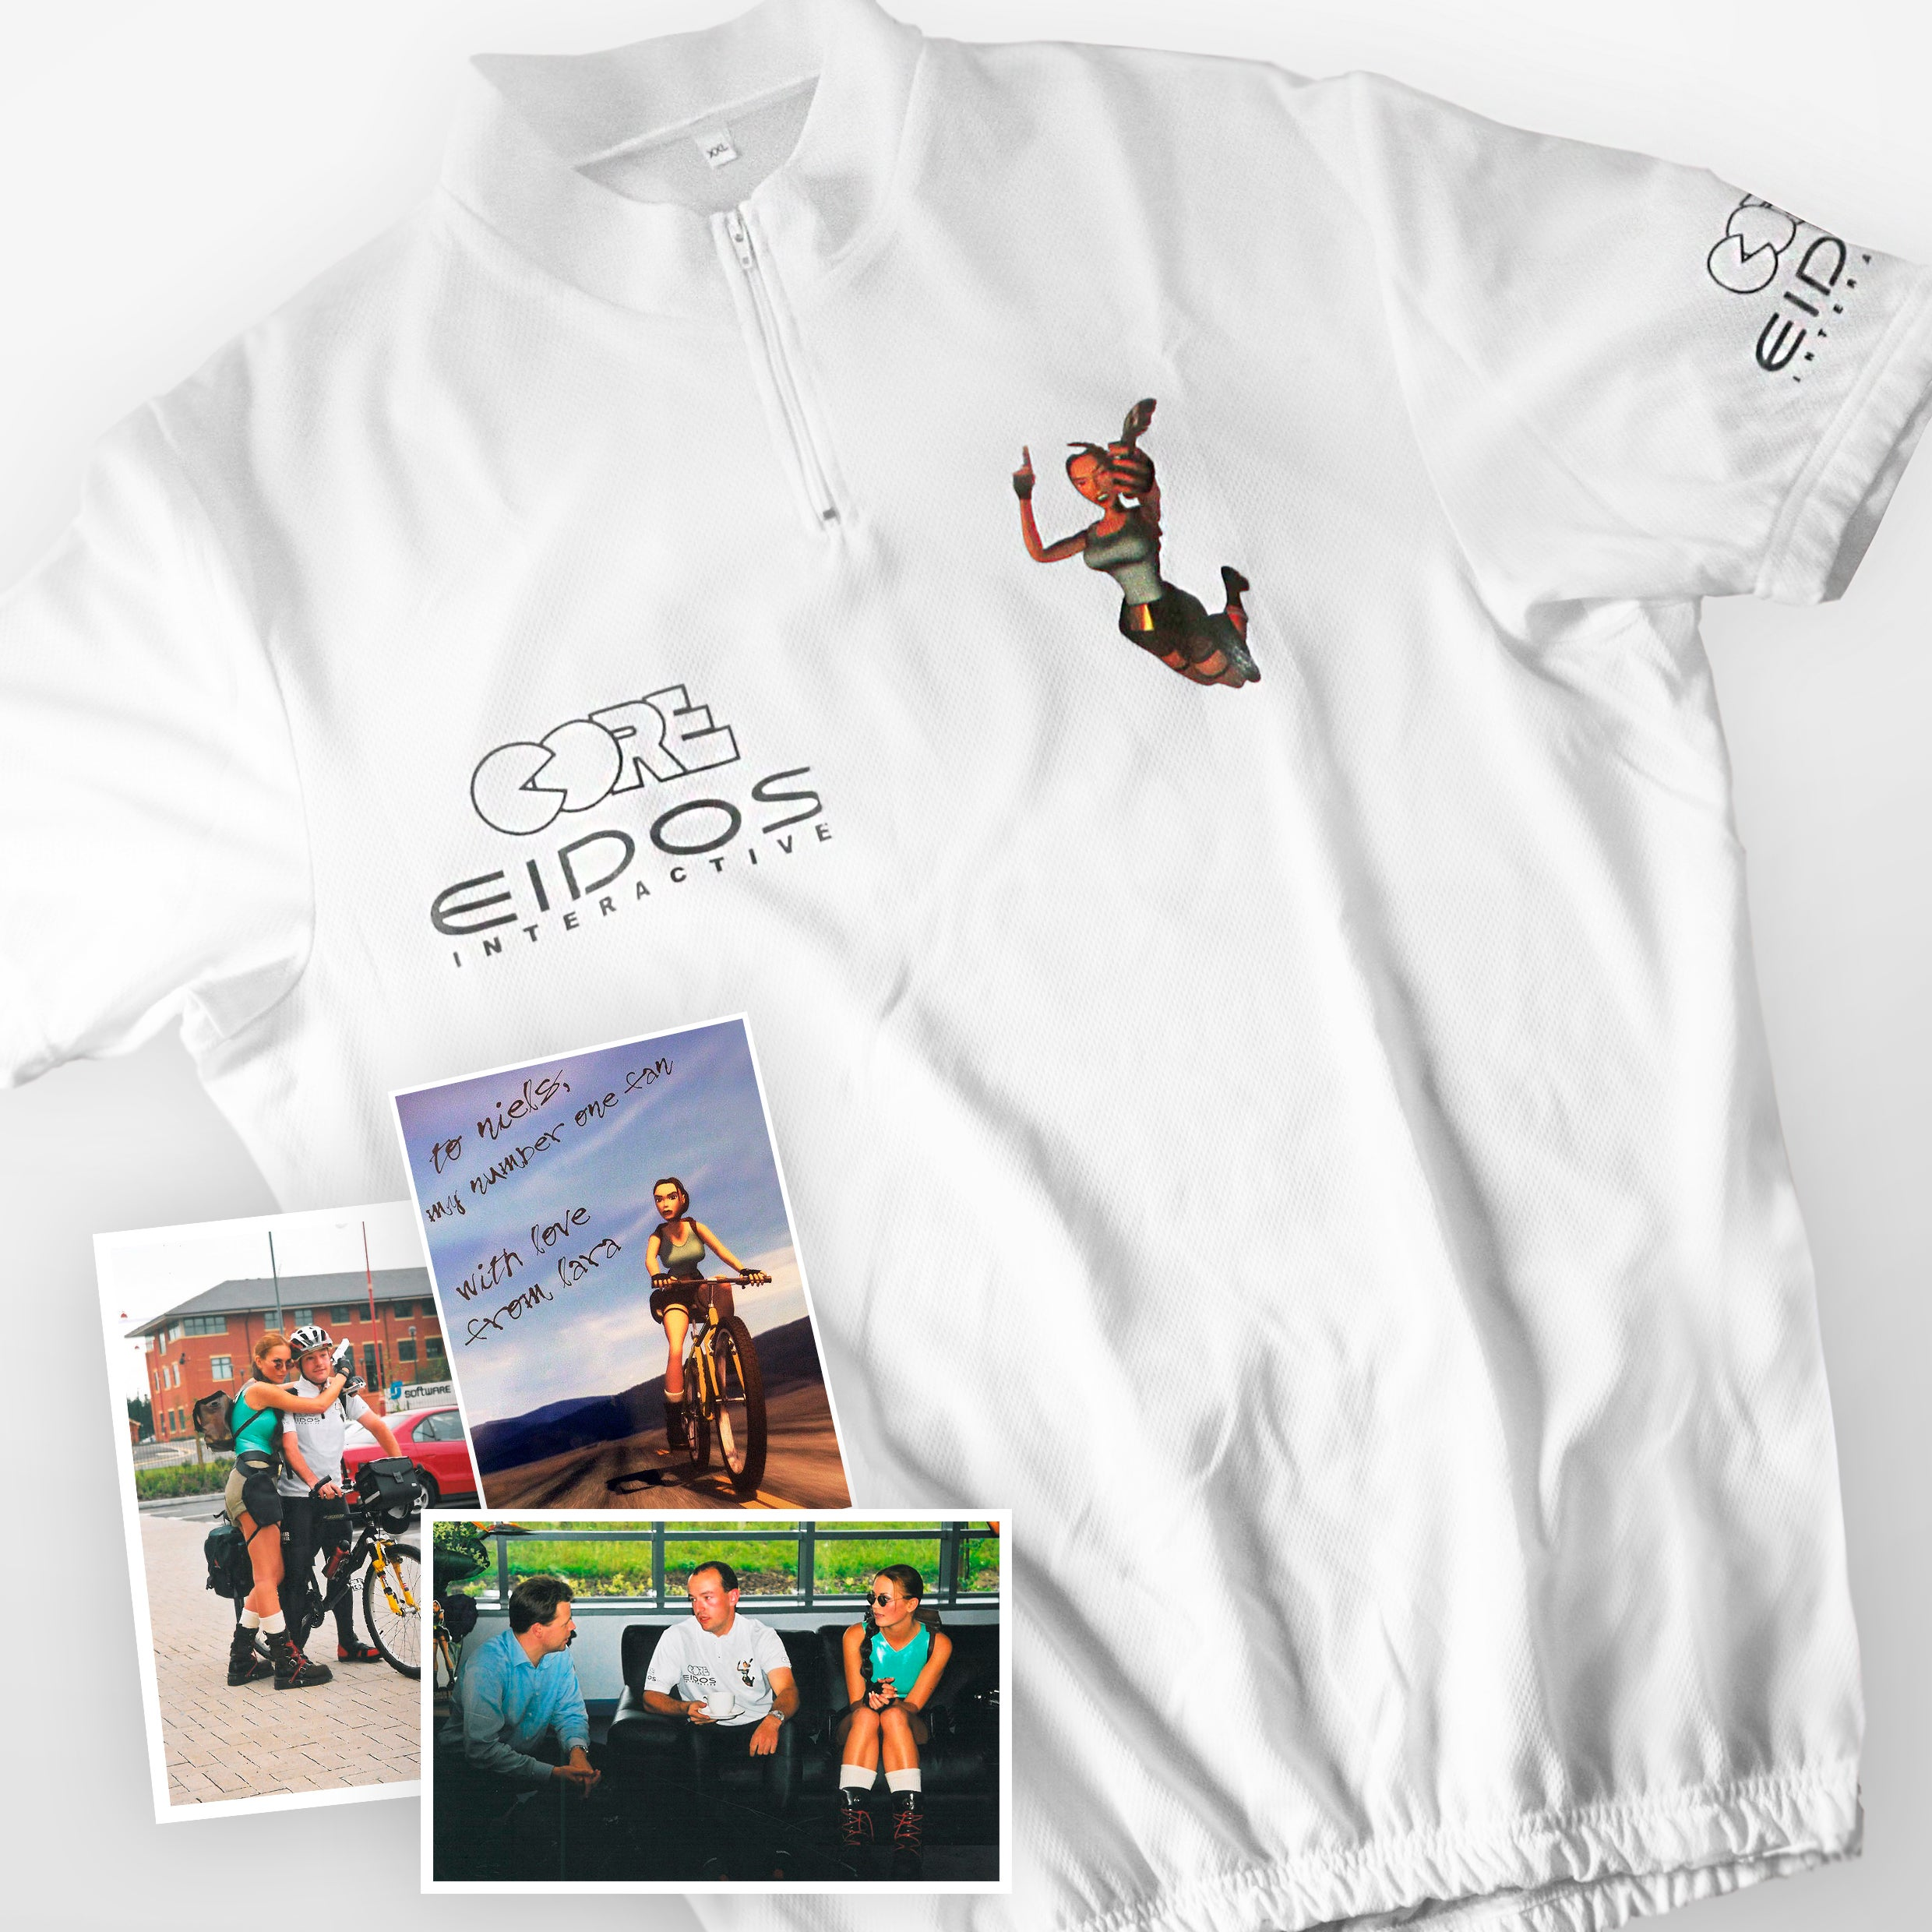 Original Niels Berndsen t-shirt on his feat of cycling the route between the Netherlands and Derby (England). We can see the t-shirt sponsored by the Eidos Interactive and Core Design brands in the photos that accompany these lines.